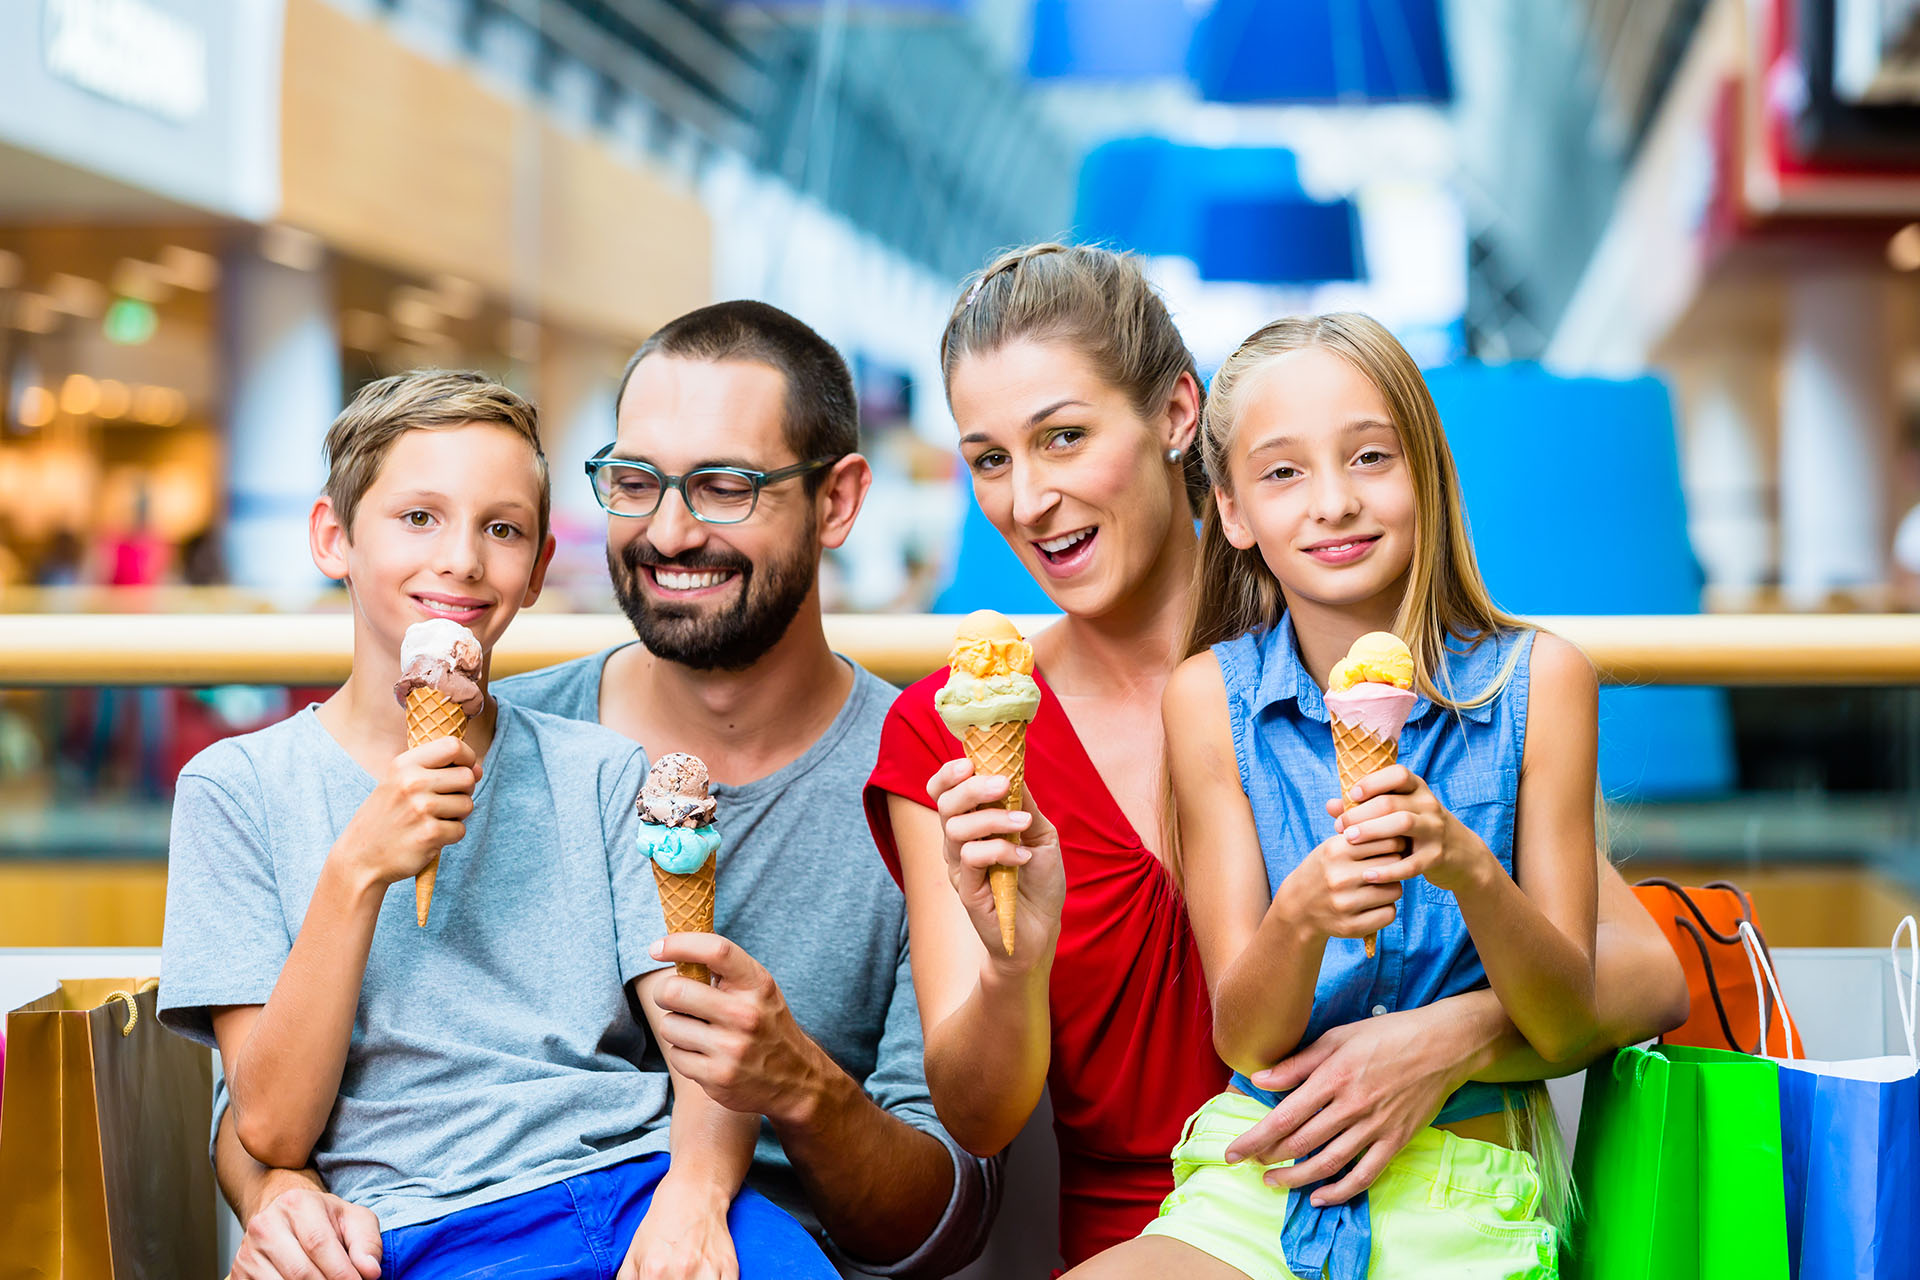 Family enjoying ice cream cones in public